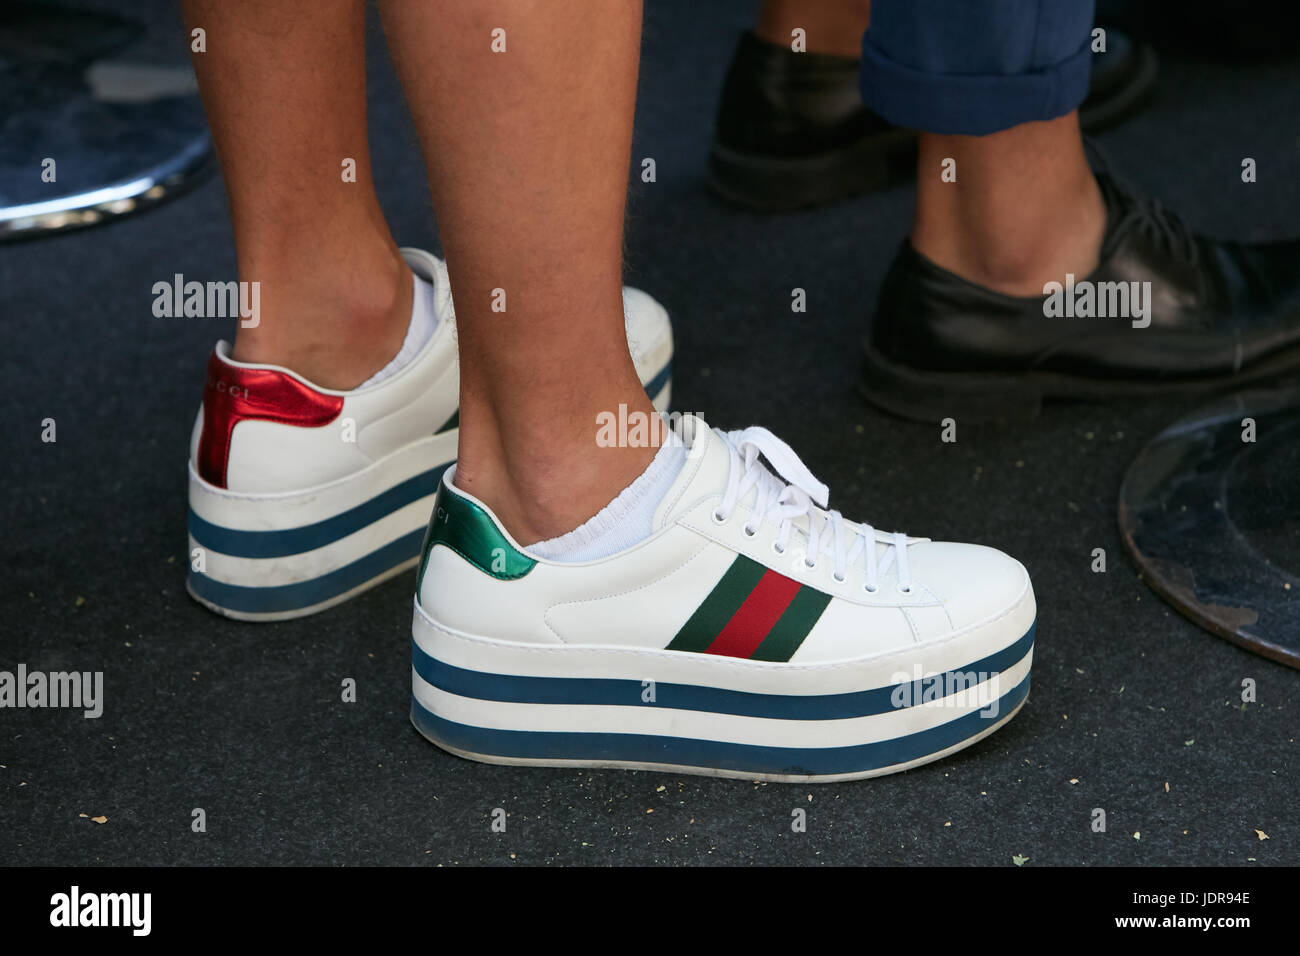 white Gucci wedge heel sneakers shoes